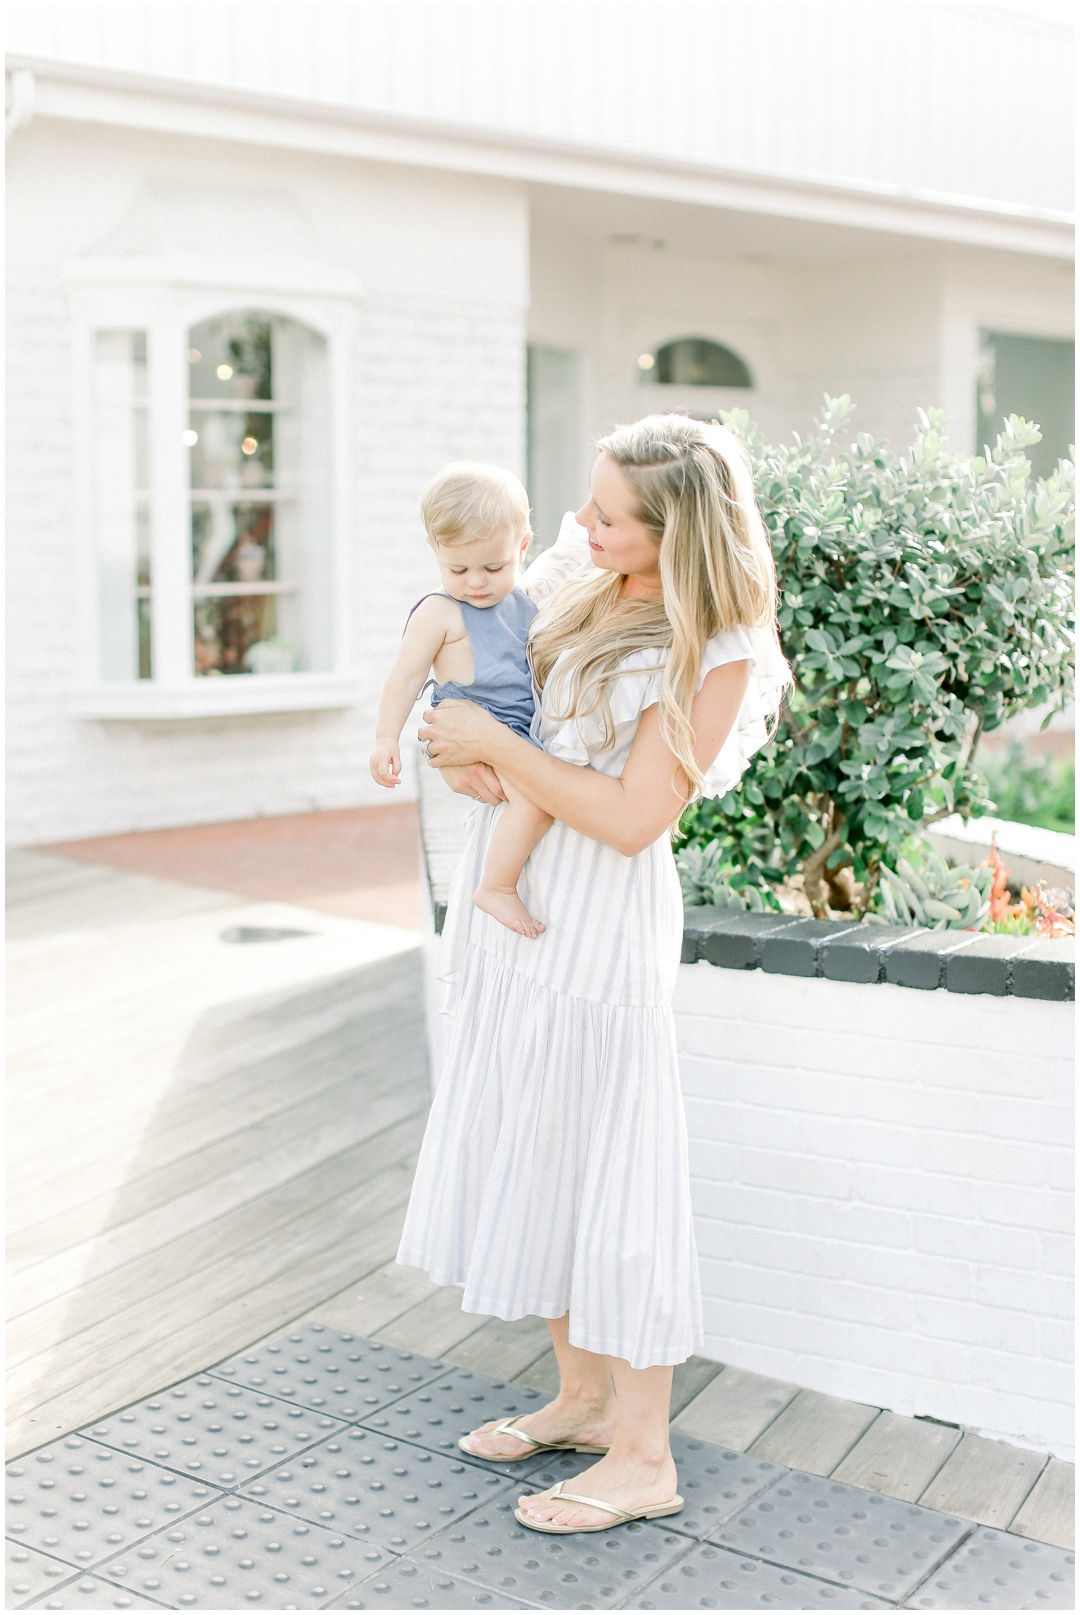 Lido_Marina_Village_Session_Photographer_Newport_Beach_Family_Photographer_Newport_Beach_Newborn_Photographer_Orange_County_Family_Photographer_Cori_Kleckner_Photography_Huntington_Beach_Photographer_Lara_Langford_Family_Session_2663.jpg